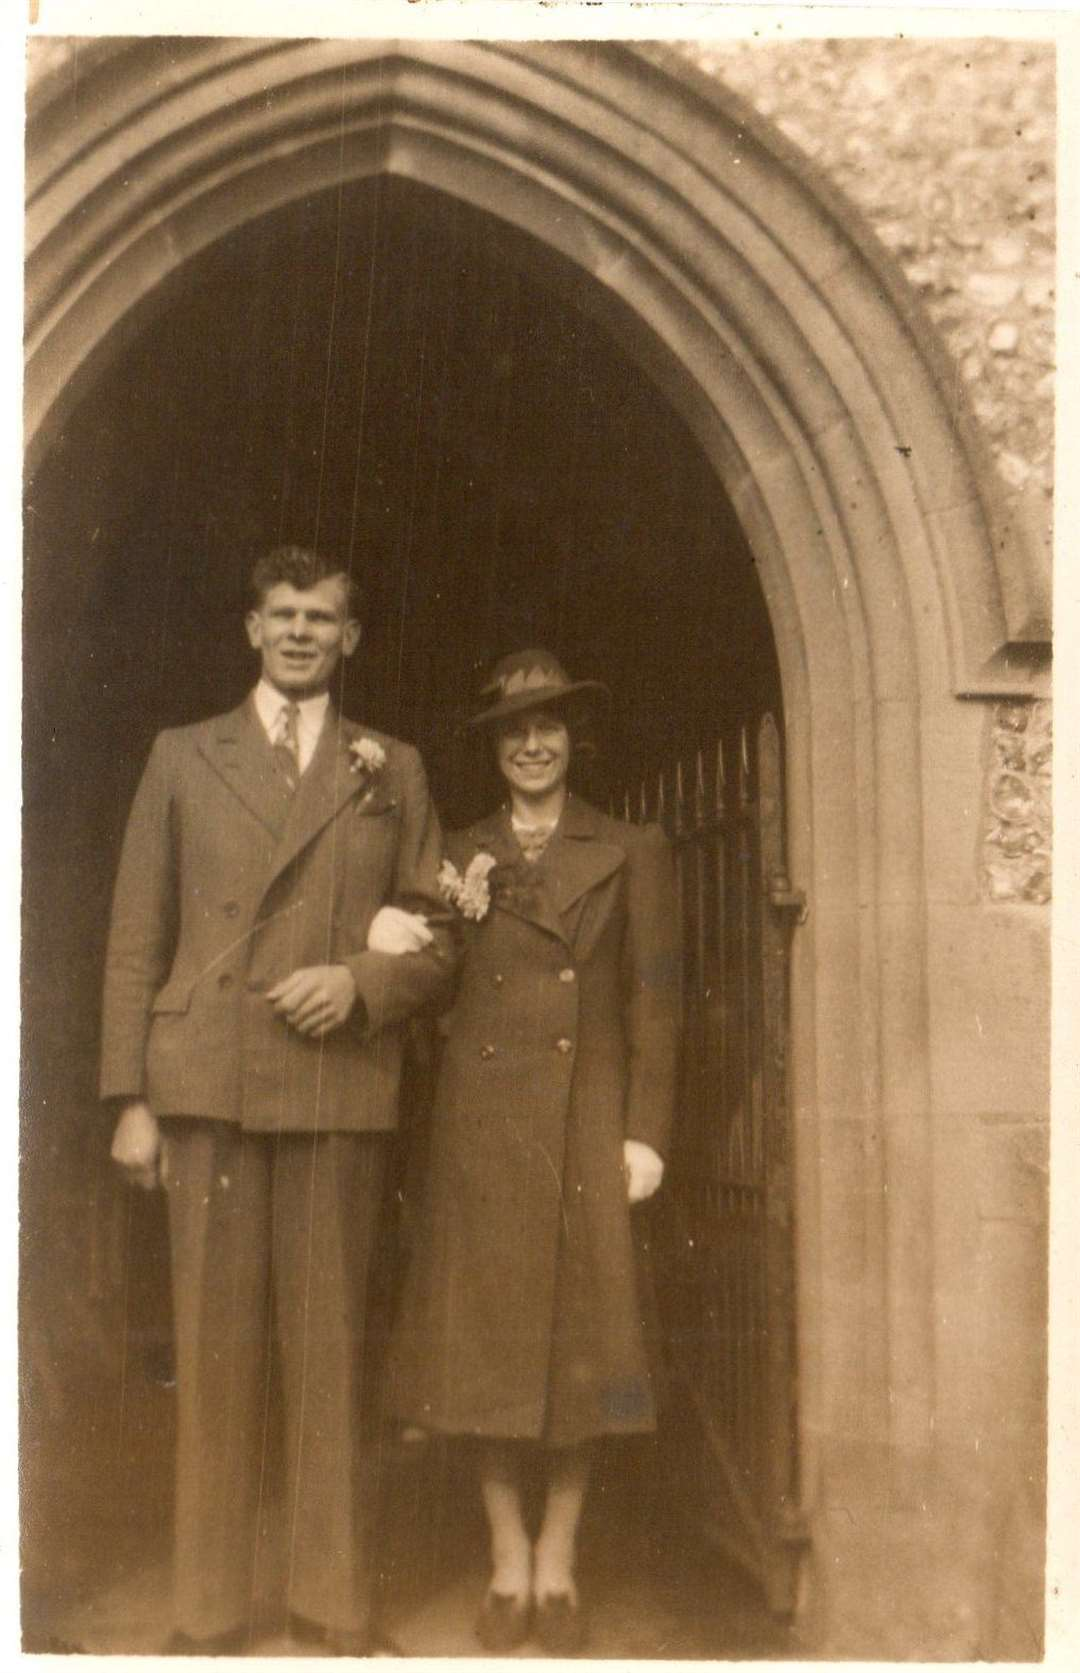 Wilfred George Honey, who died while on duty four days after his 21st birthday in 1941, marriedViolet May Holdstock onMarch 16, 1940 in St John the Baptist Church, Bredgar, when Wilfred was 20 and Violet was 18 (21096161)